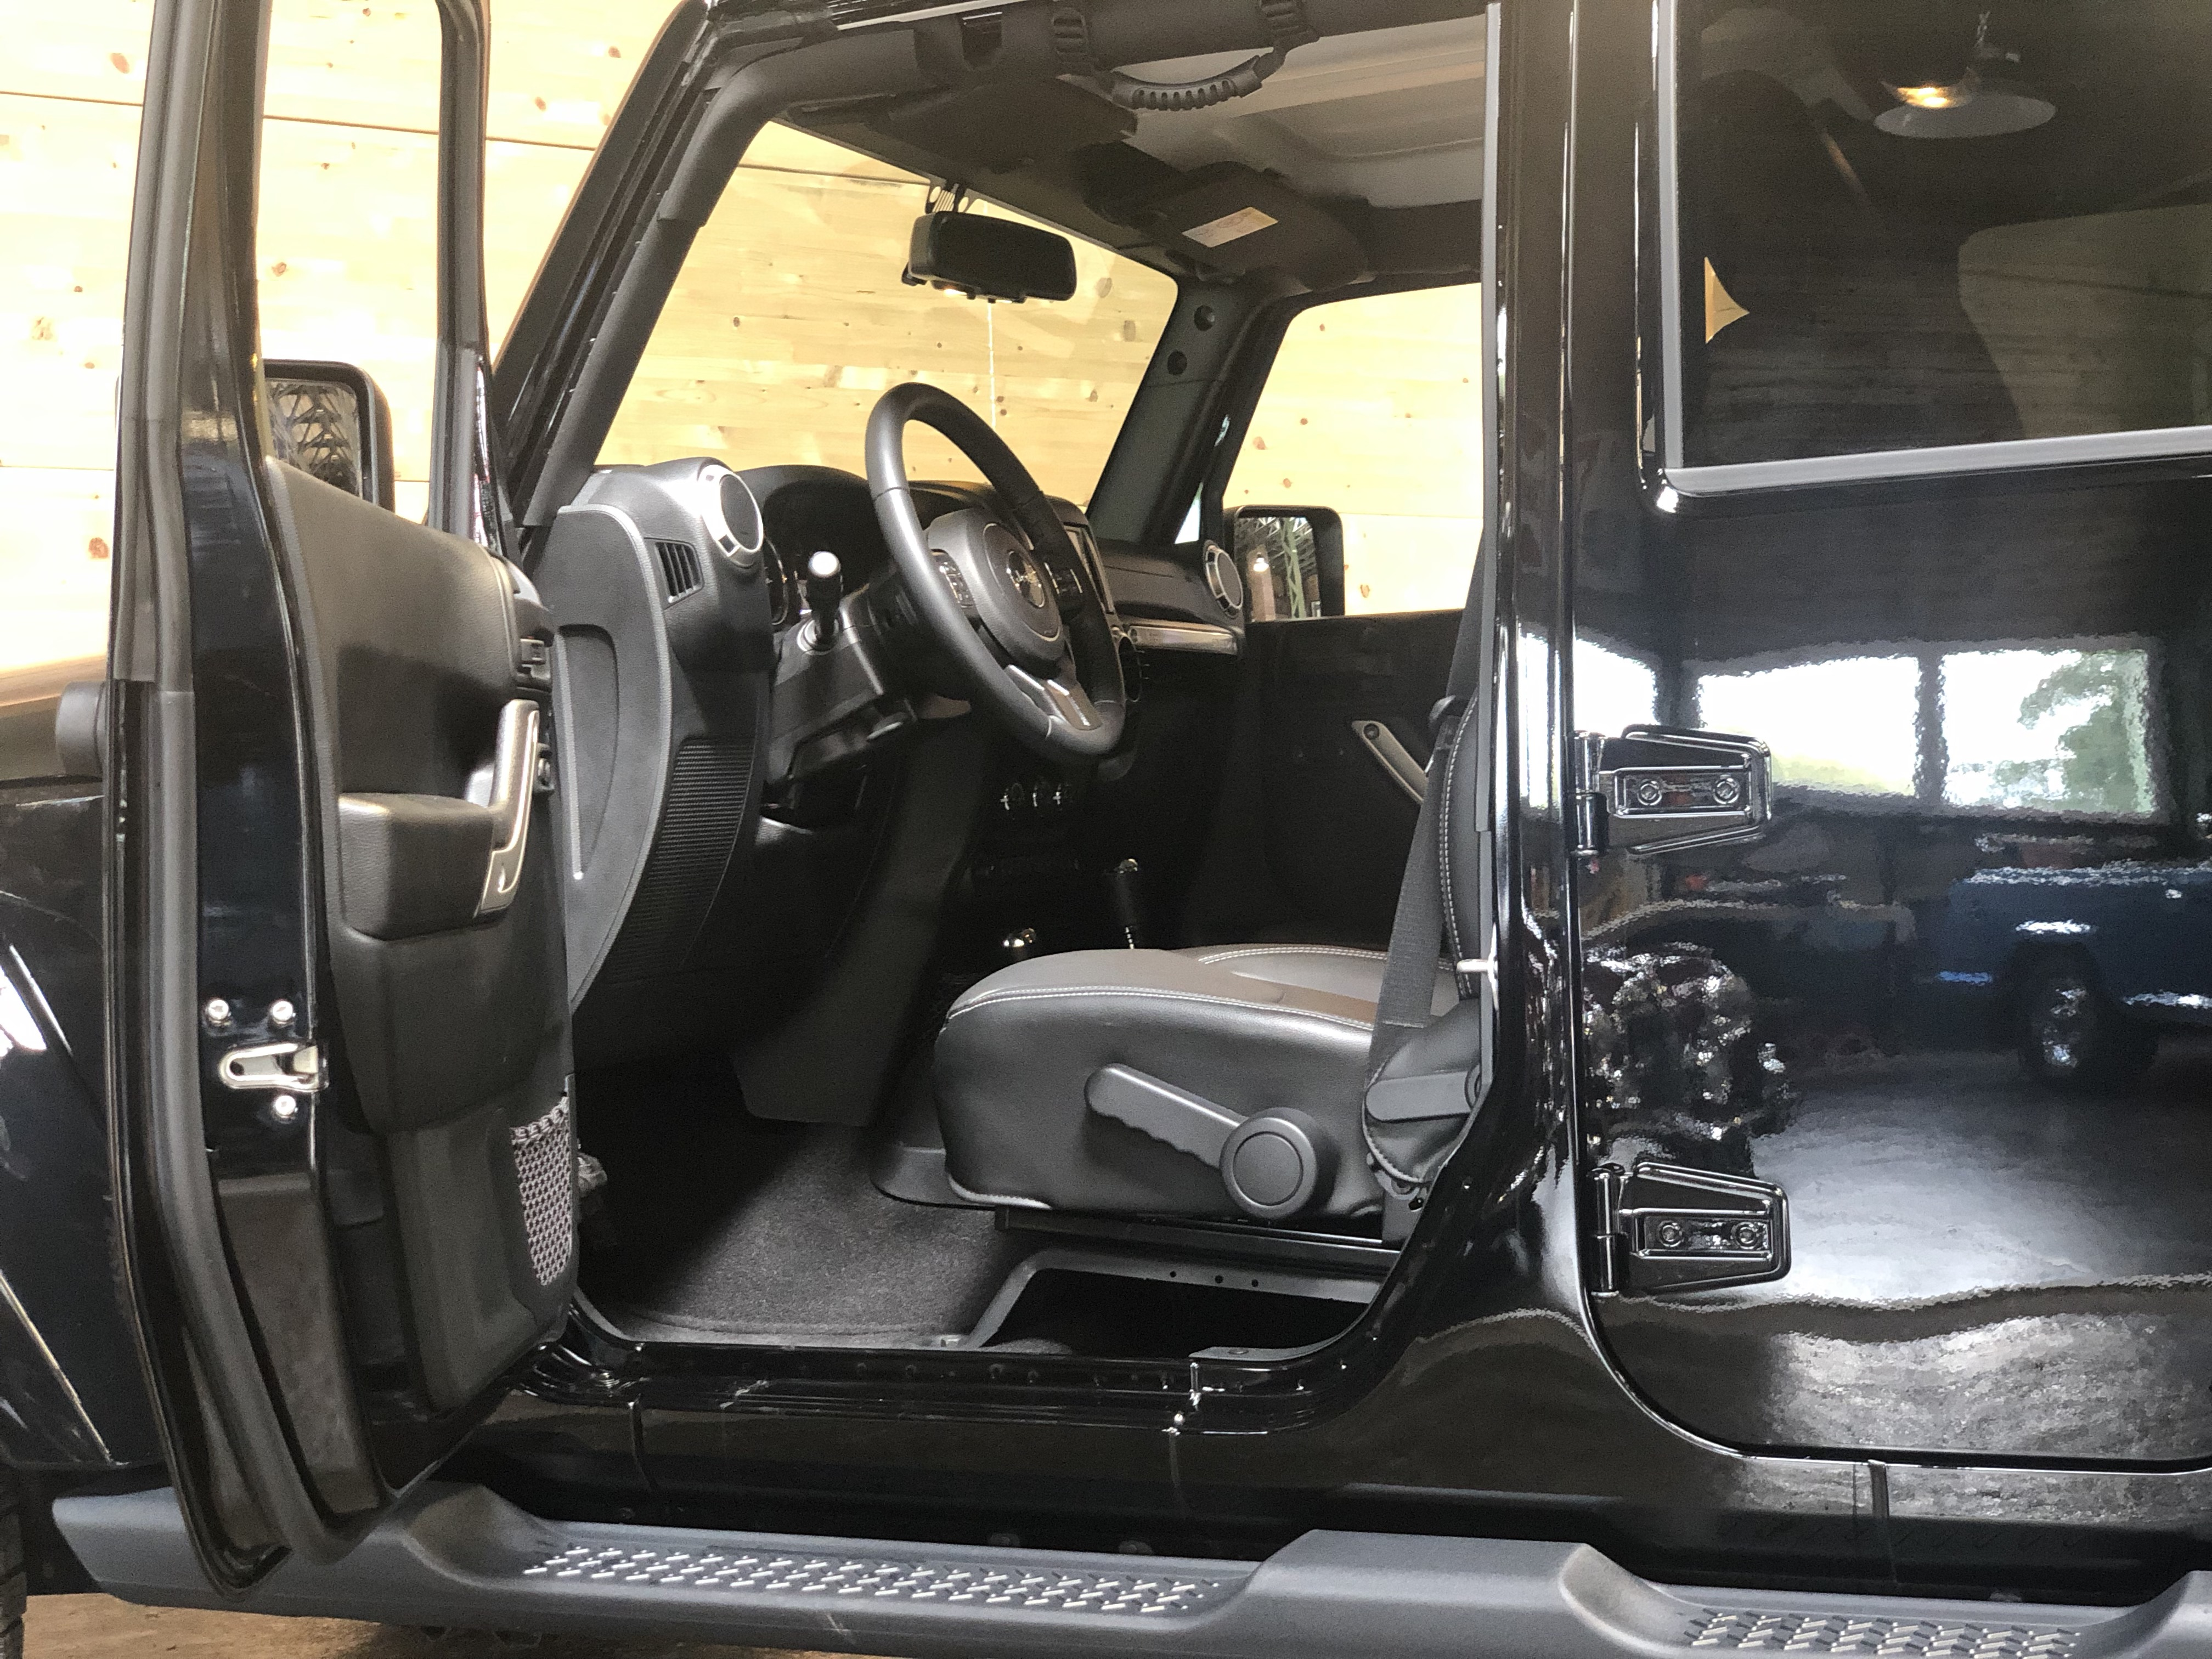 Jeep Wrangler Unlimited V6 3.6 Sahara BVA